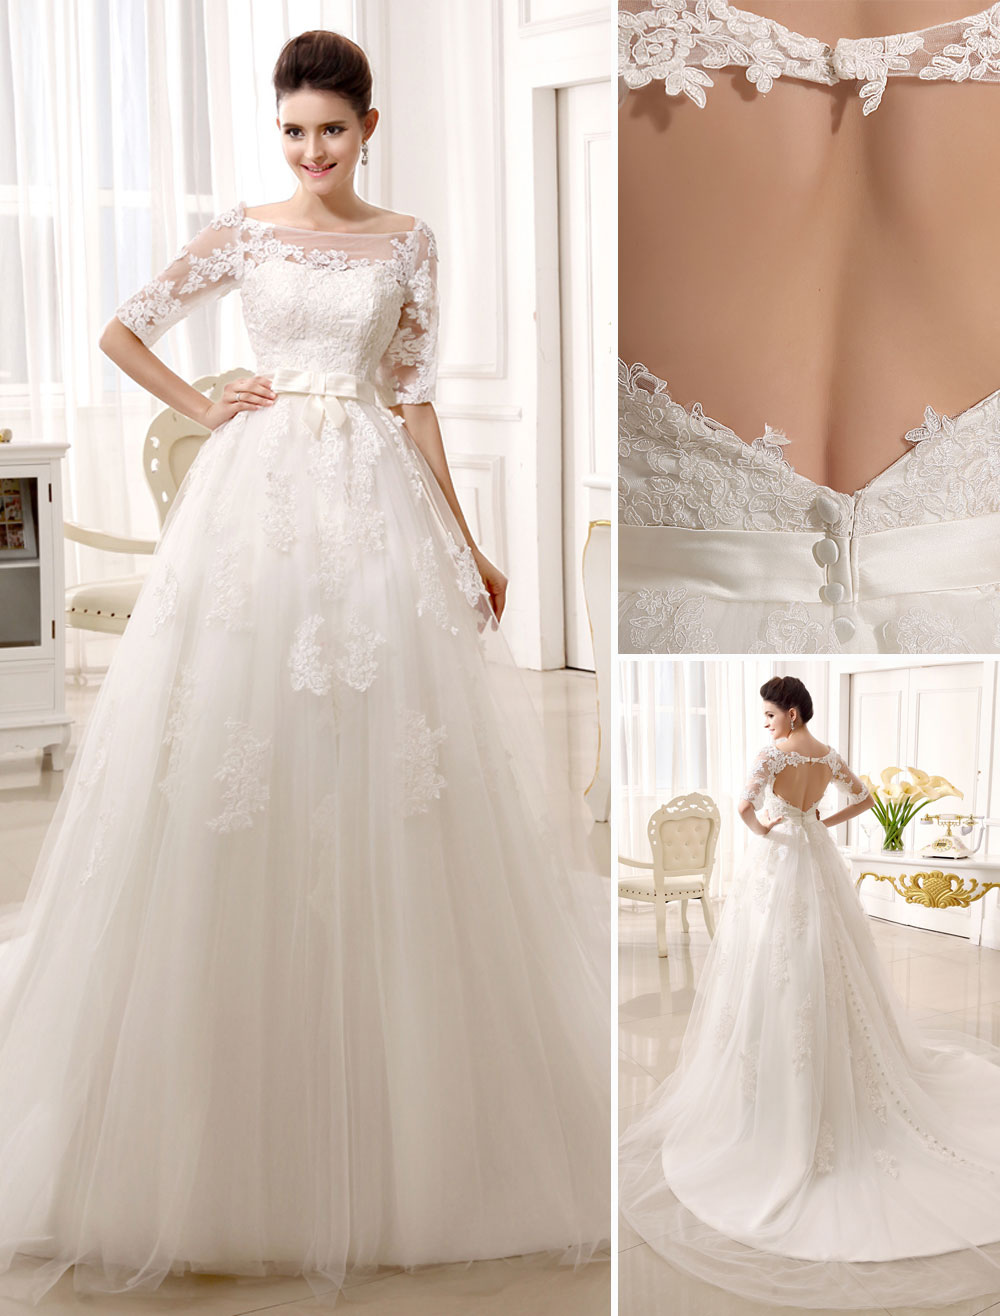 Ivory Tulle Lace Backless Chapel Train Wedding Dress with Lovely Bowknot